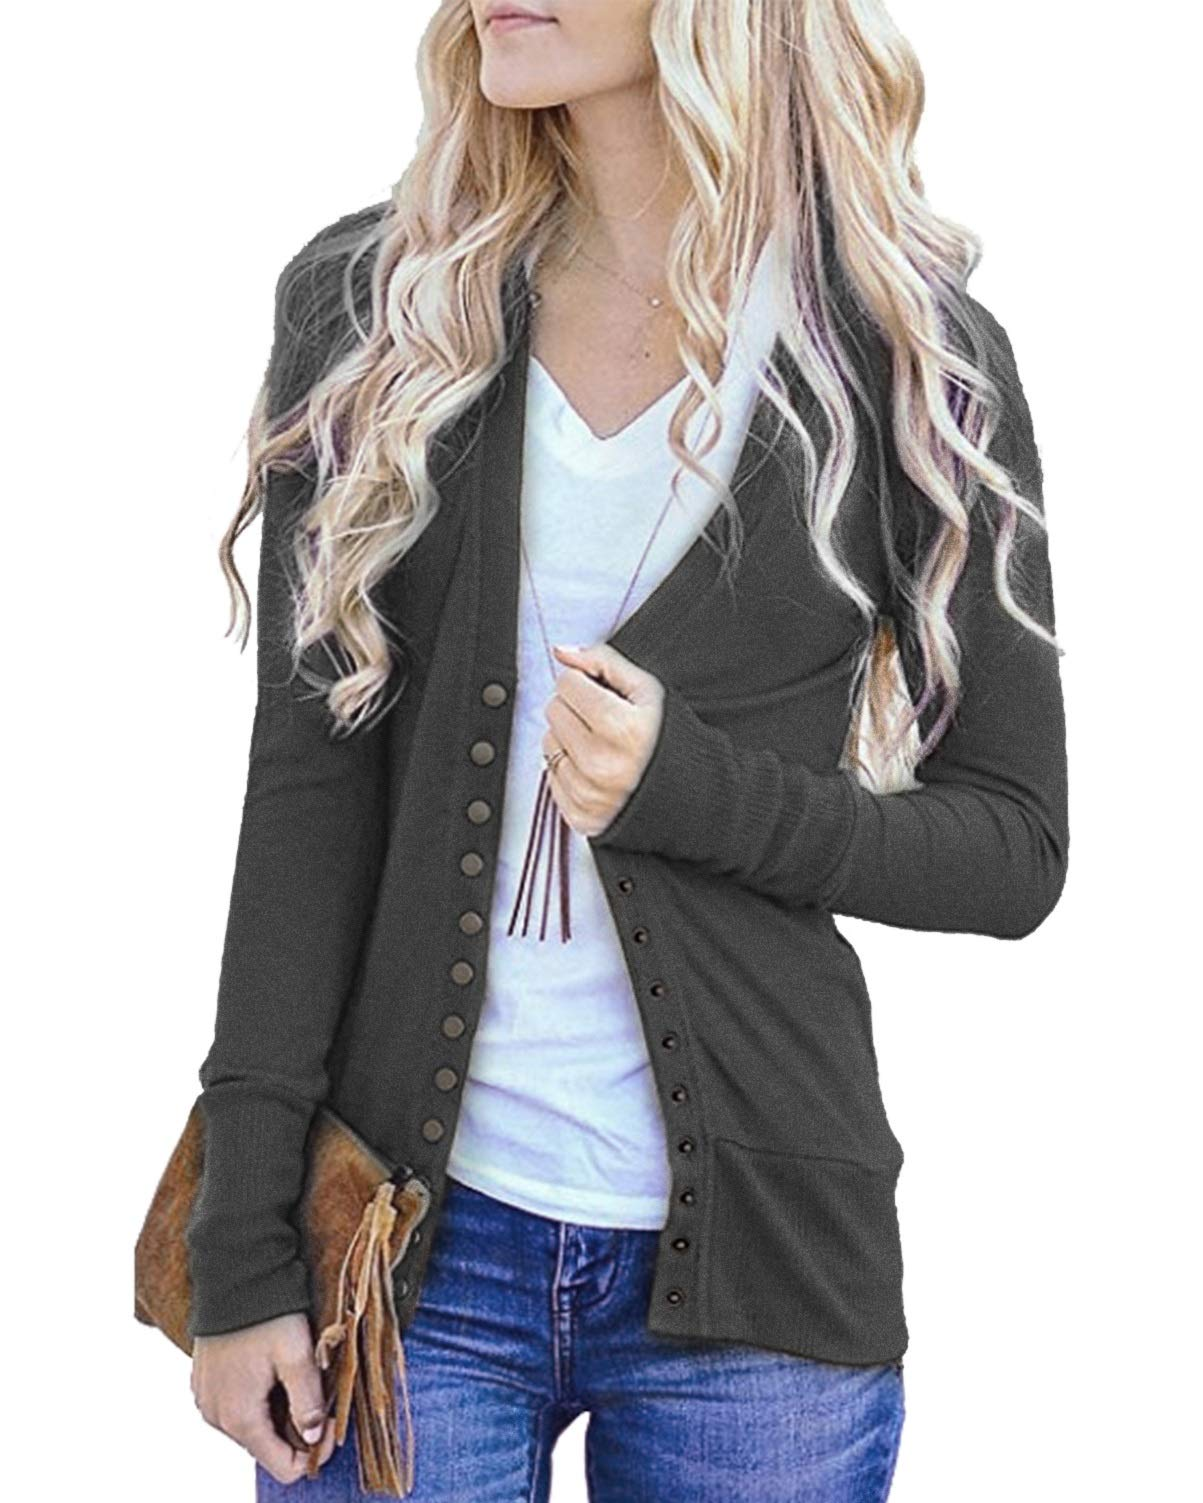 Hisweet Women's Cardigans Long Sleeve Button Down Knitting Ribbed Sweater